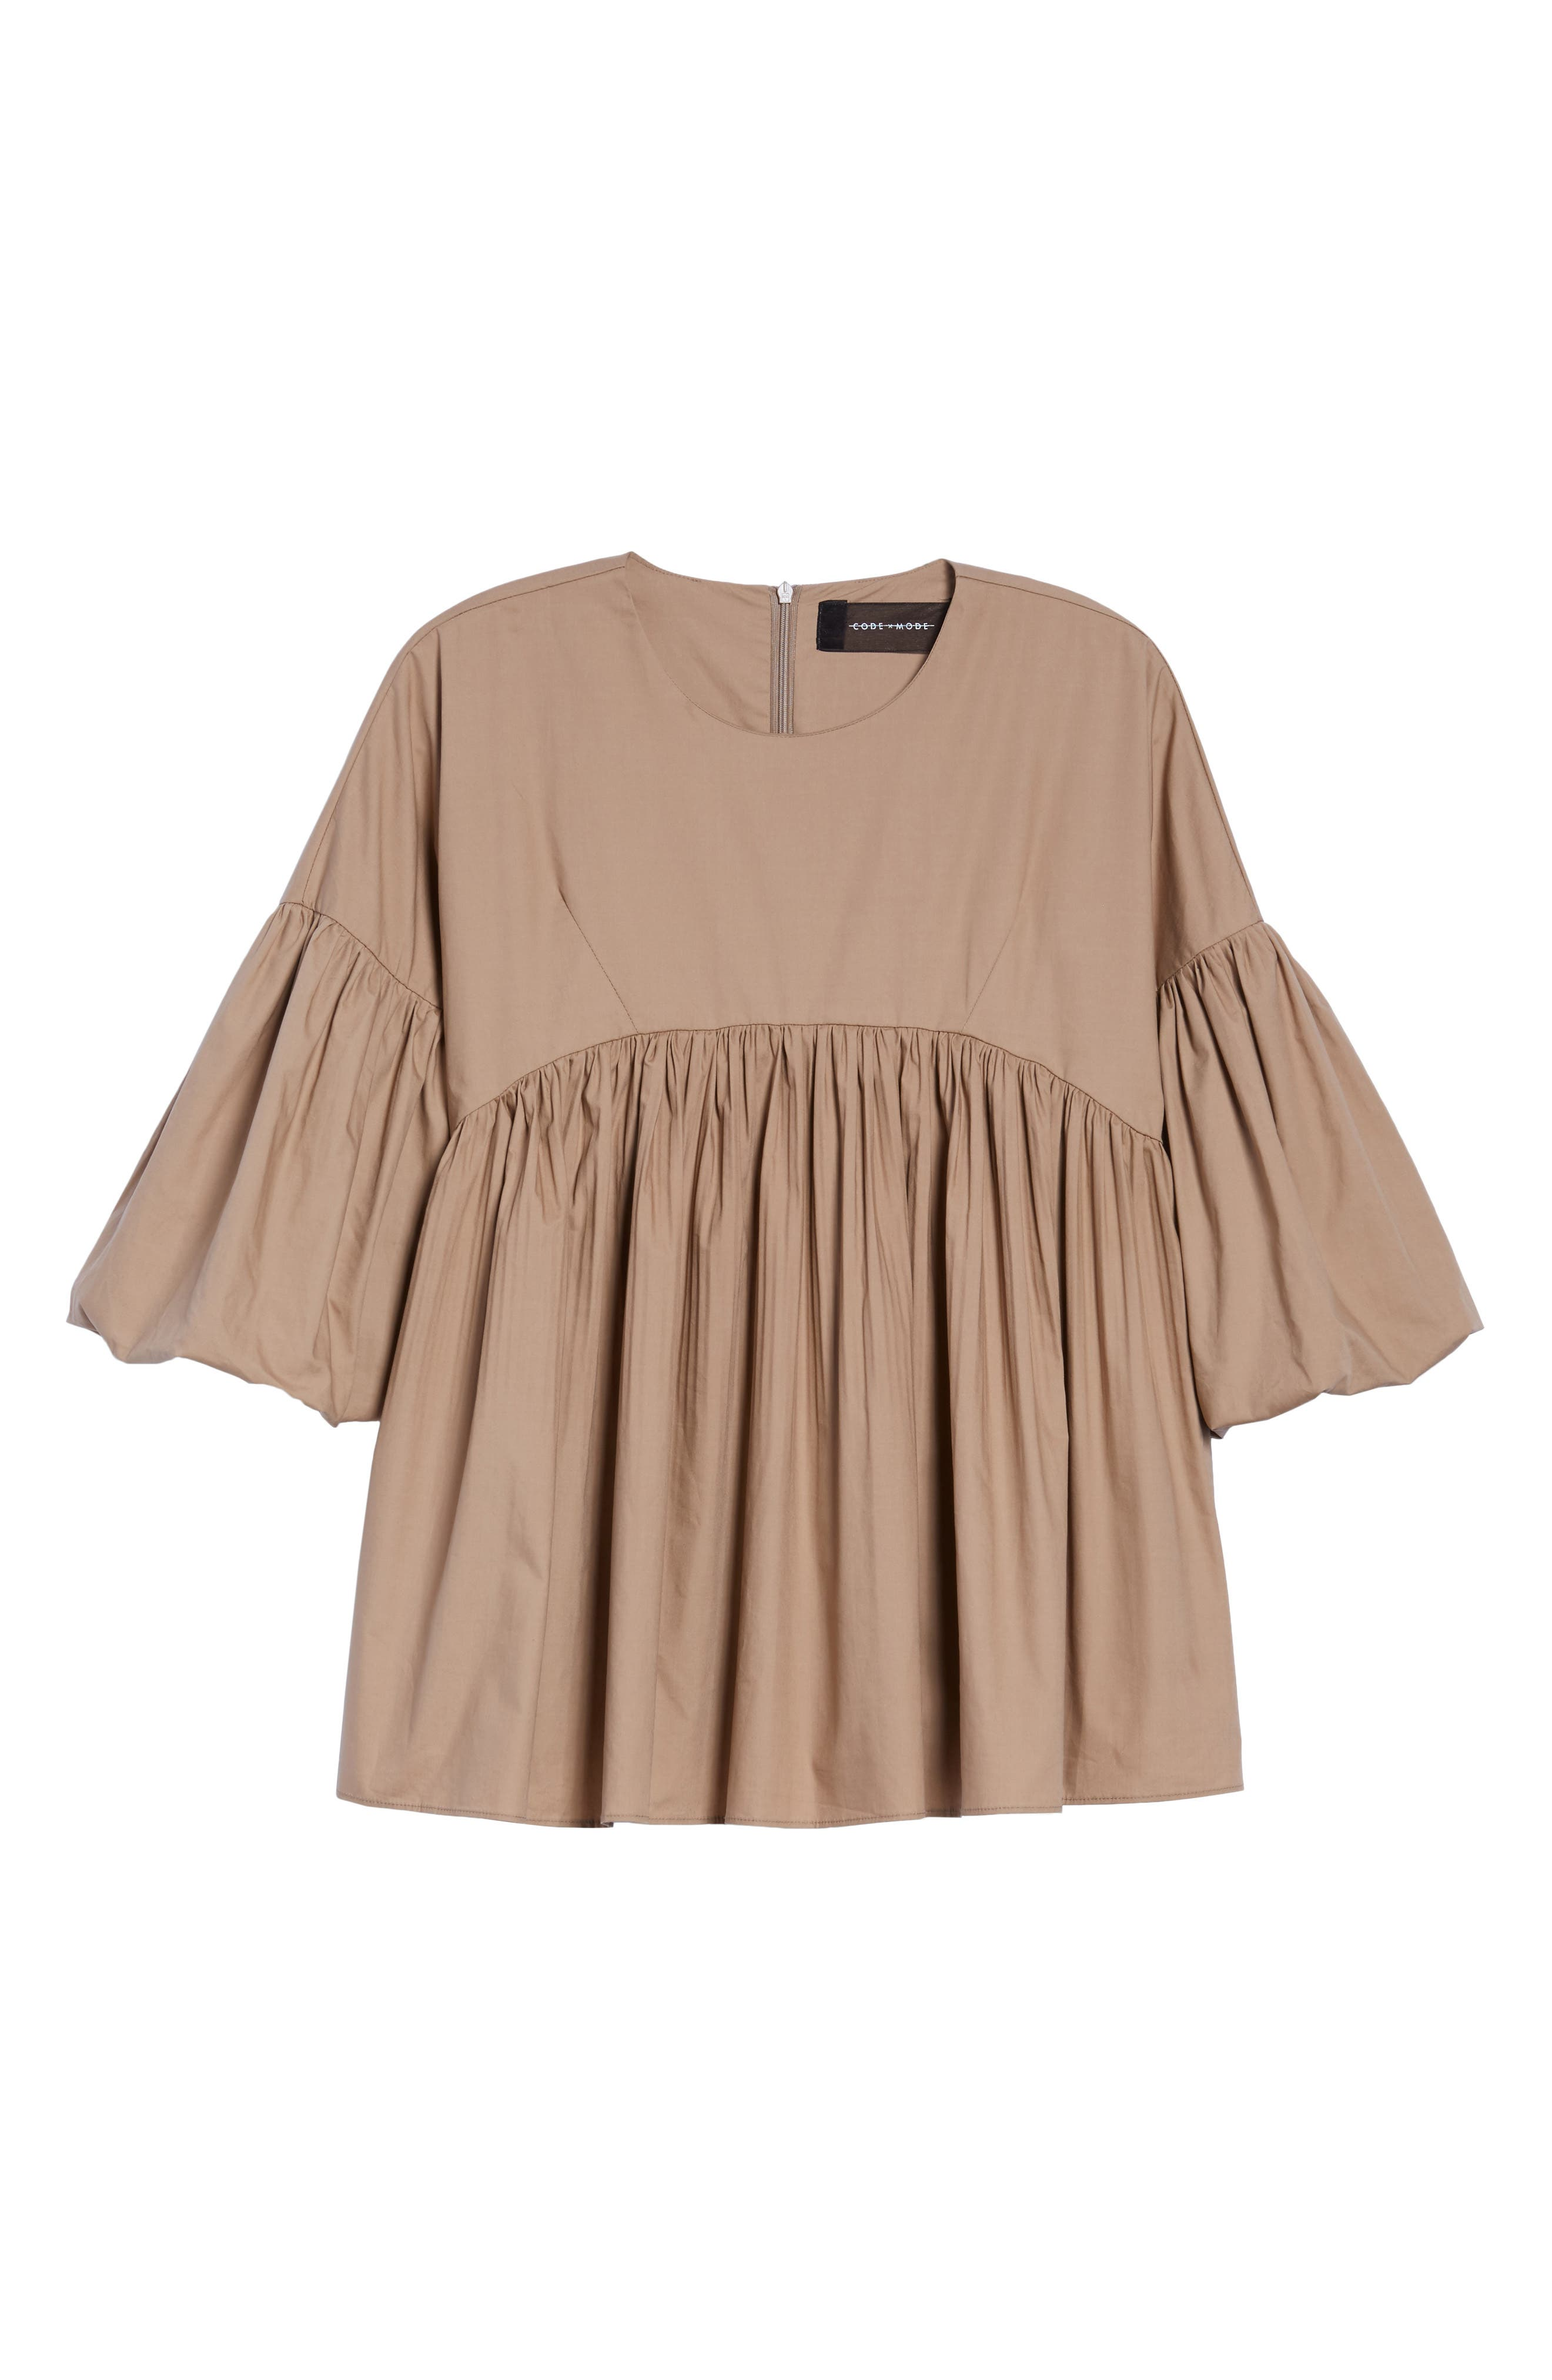 Pleated Swing Top,                             Alternate thumbnail 6, color,                             250